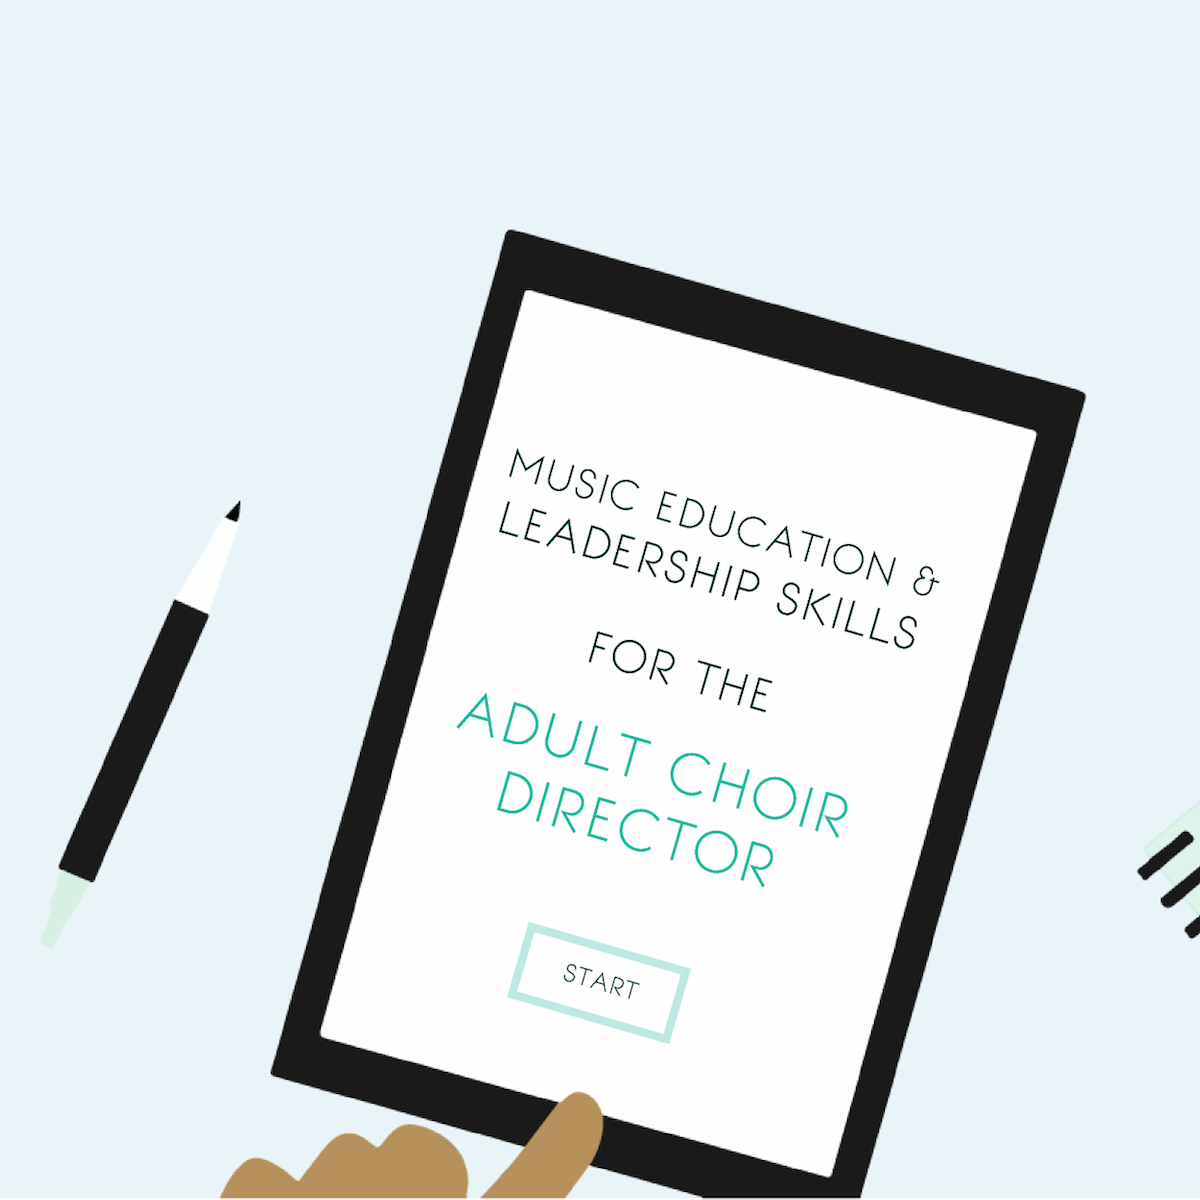 Music Education & Leadership Skills for the Adult Choir Director - an online mini course for church choir directors.png